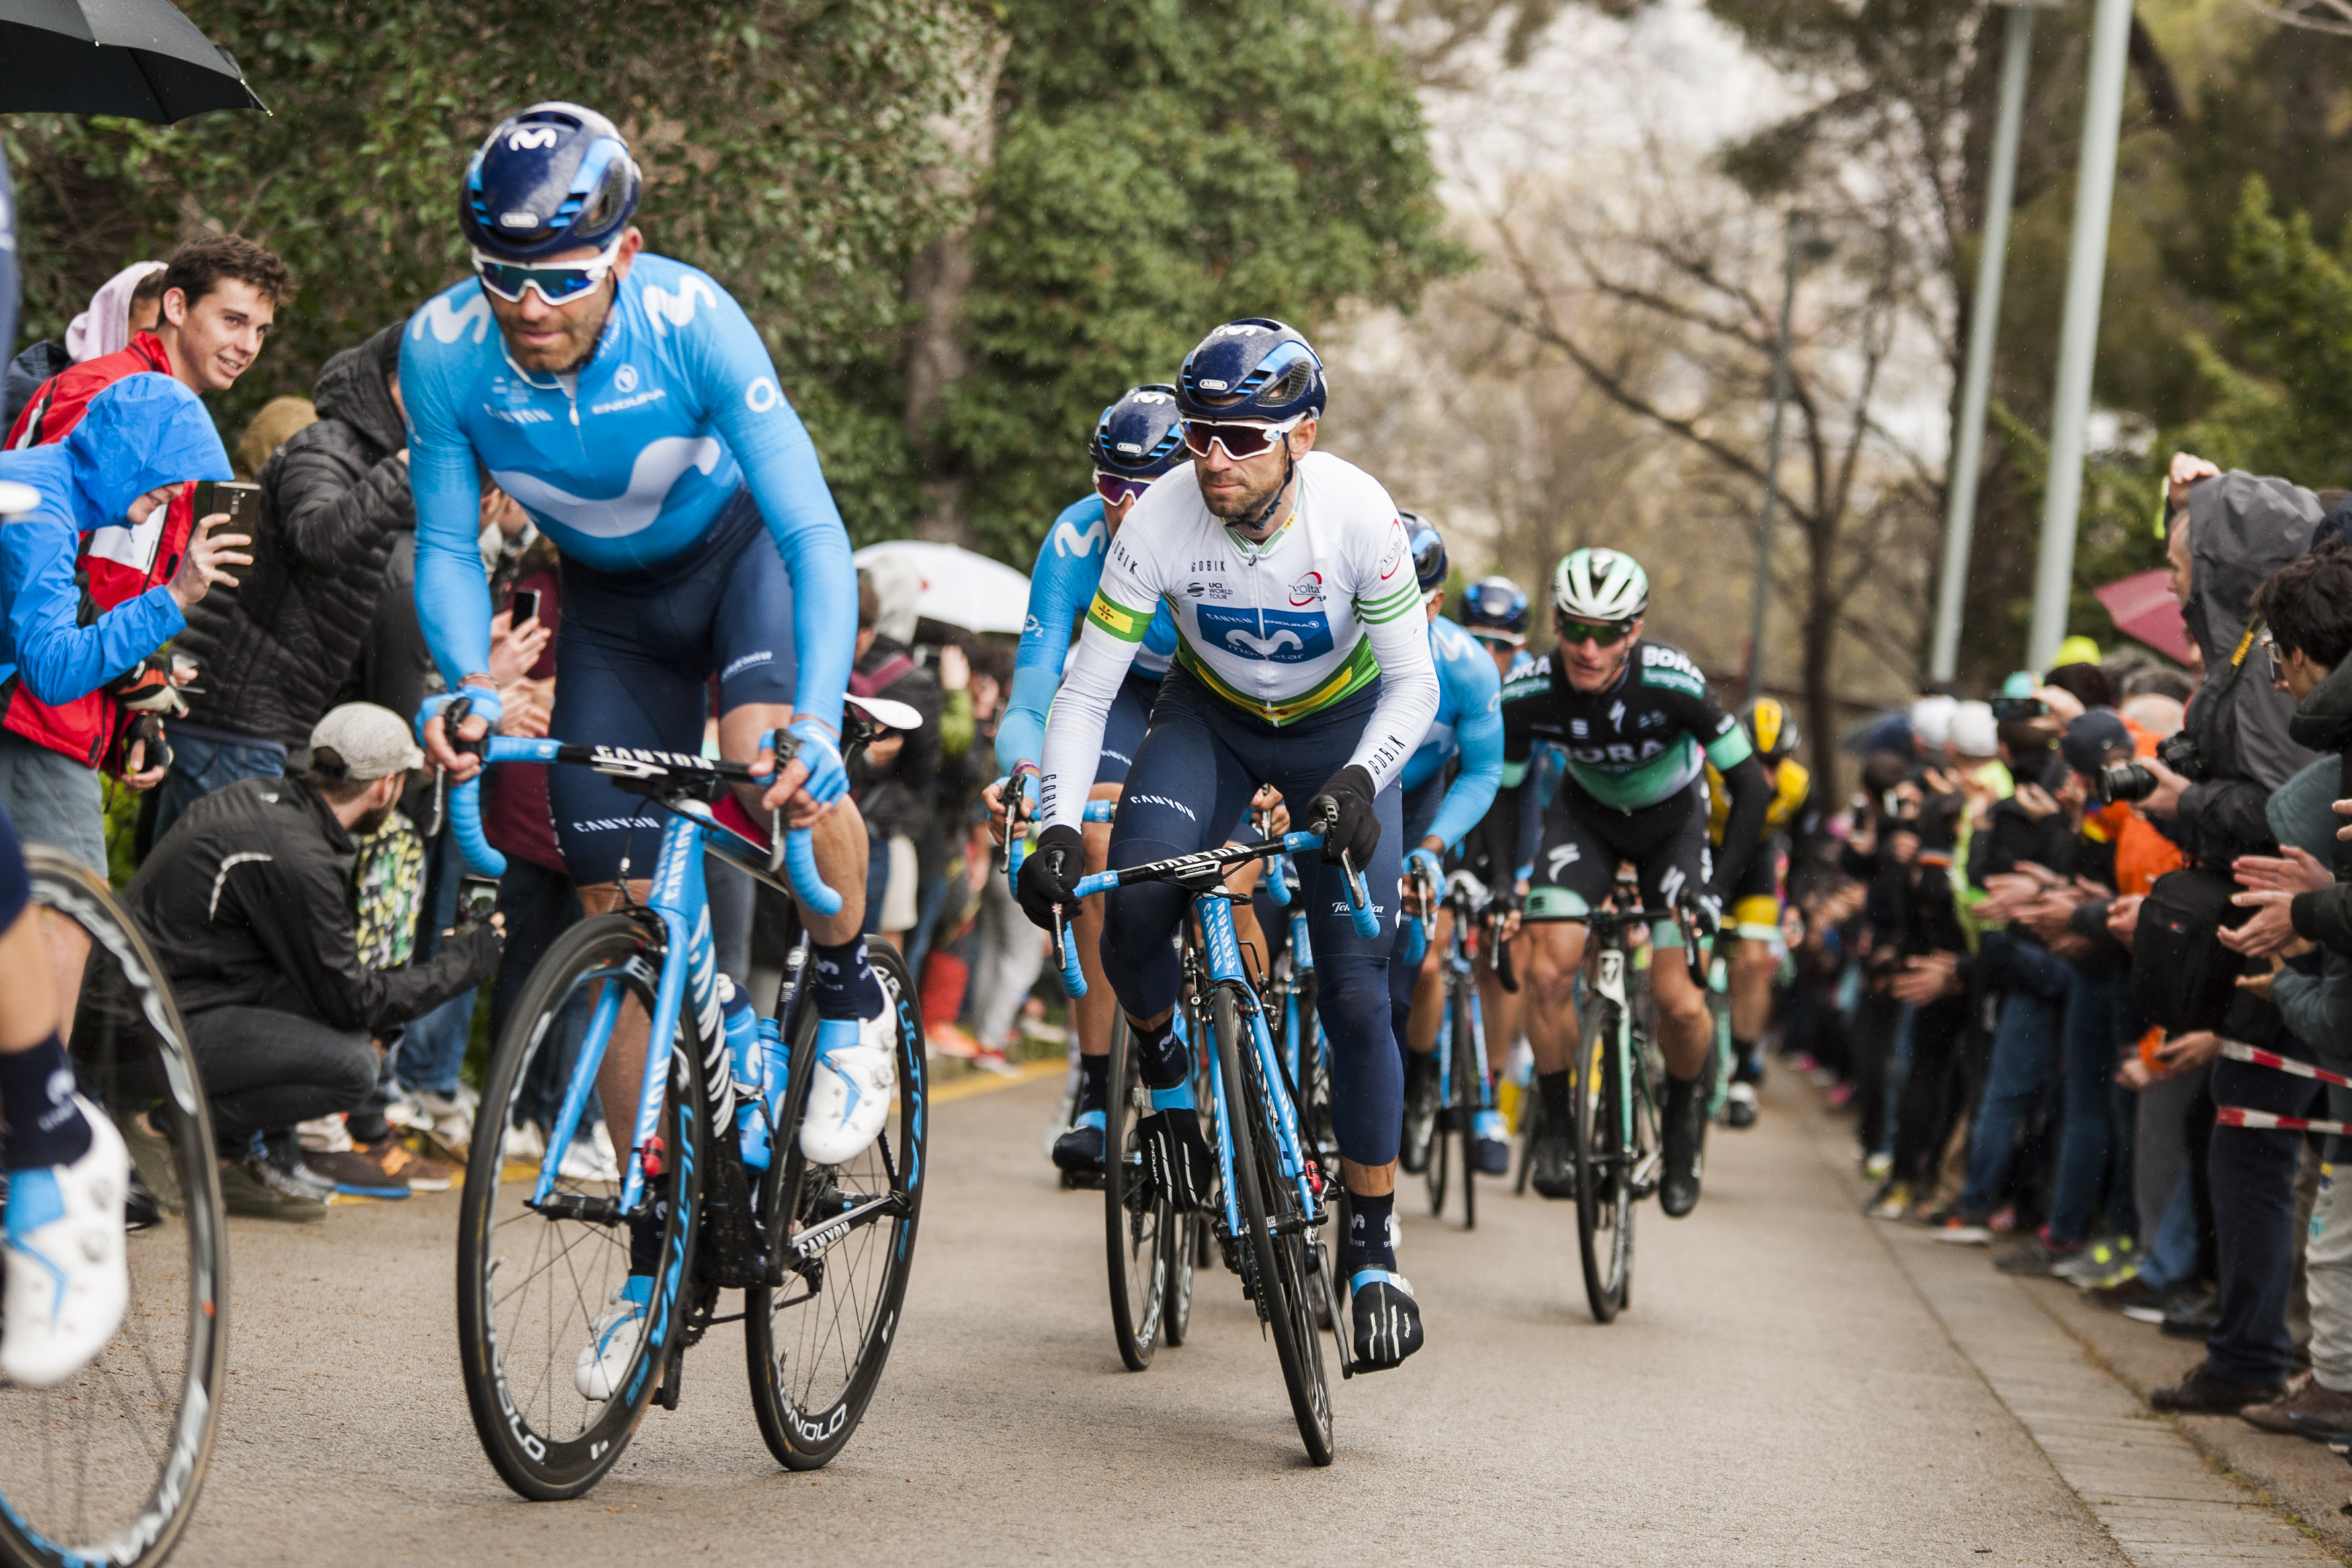 b6ff168b9 Volta a Catalunya 2019 start list - Cycle News Now